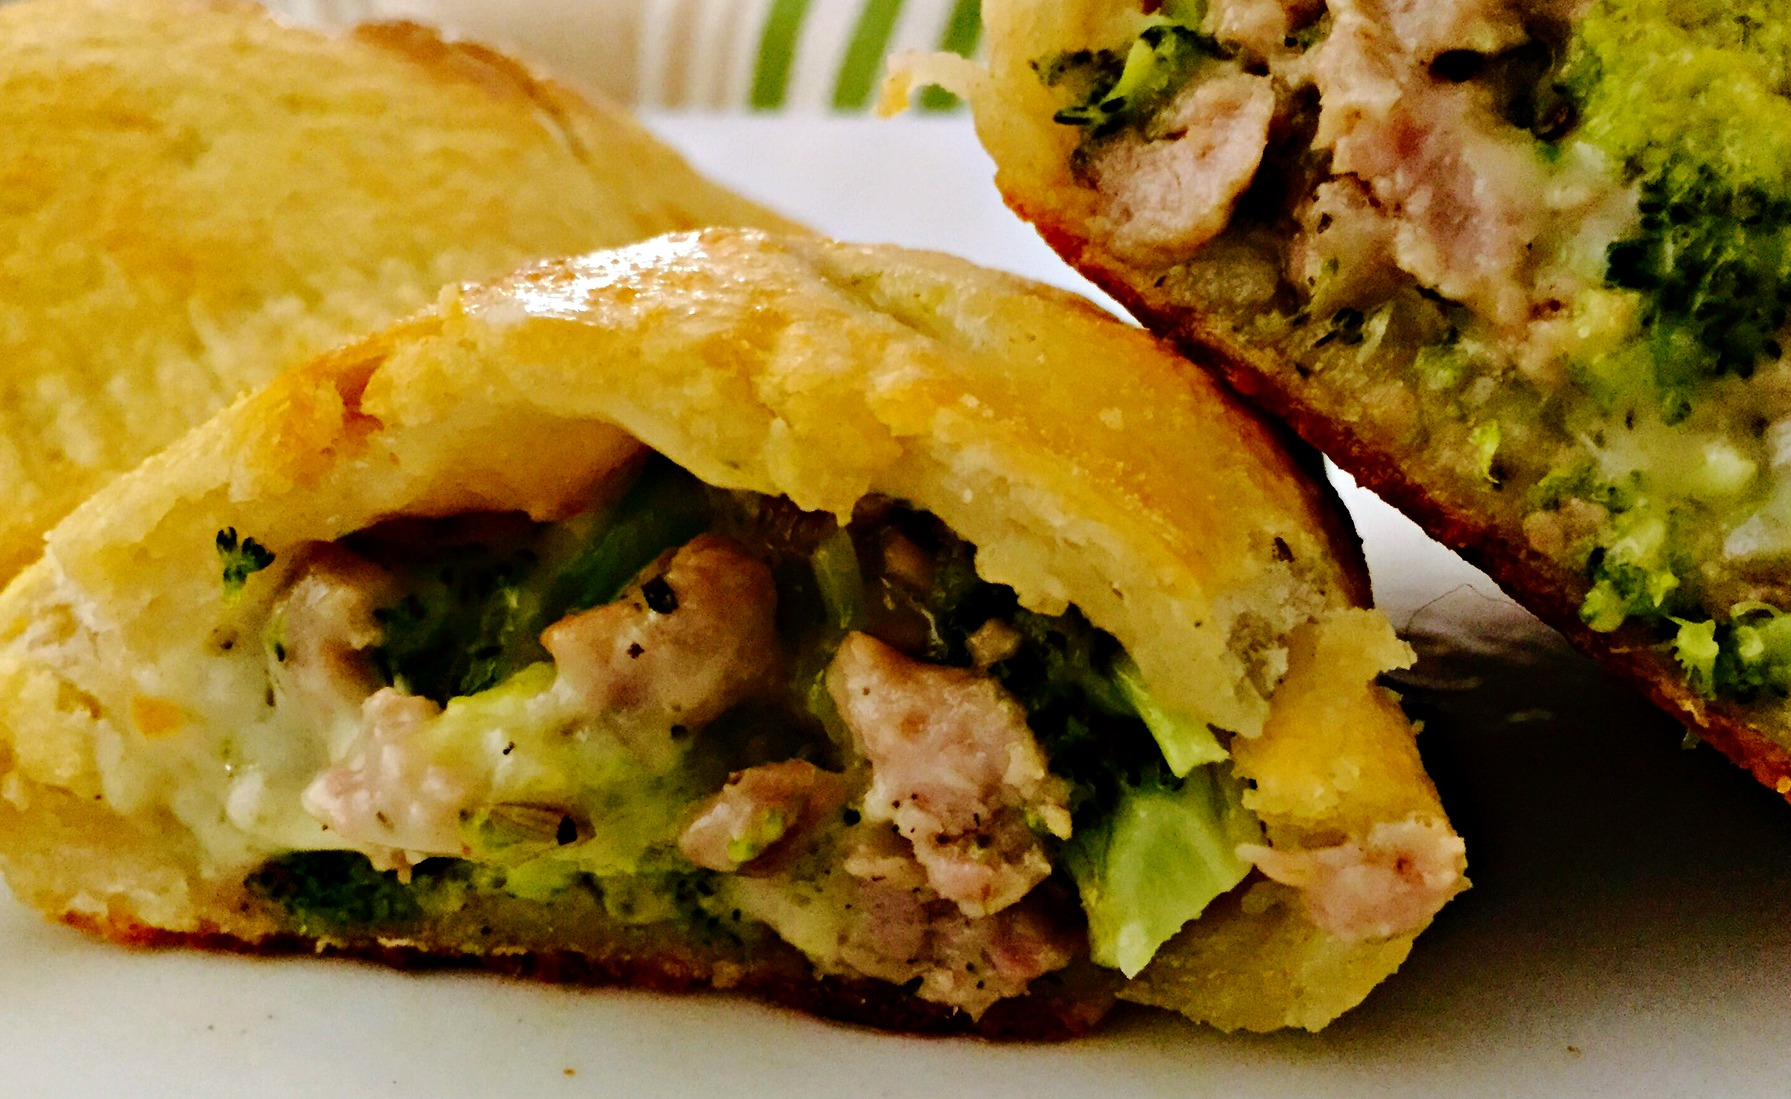 Sausage, Broccoli & Herbed Goat Cheese Calzone